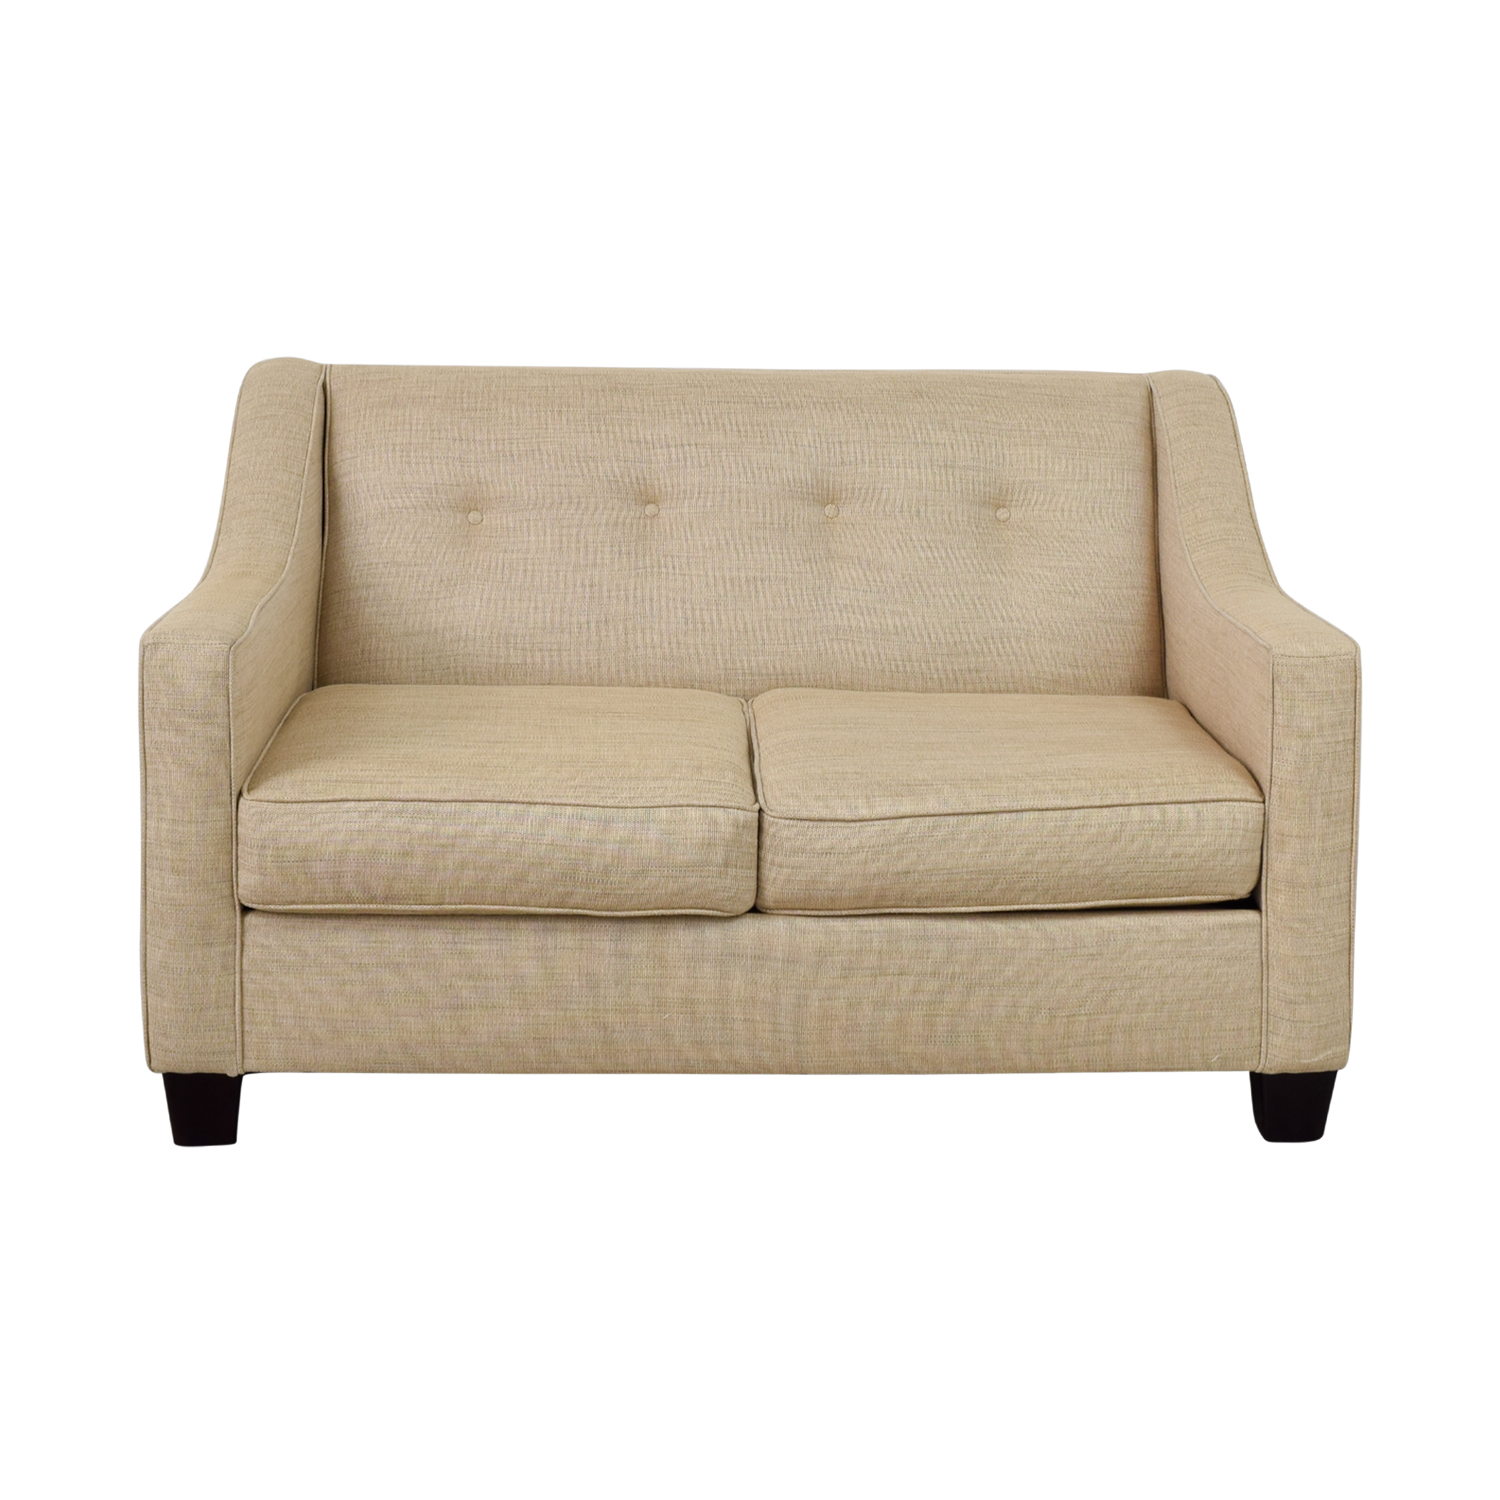 Enjoyable 79 Off Bobs Discount Furniture Bobs Furniture Caleb Tan Tufted Back Loveseat Sofas Home Remodeling Inspirations Gresiscottssportslandcom